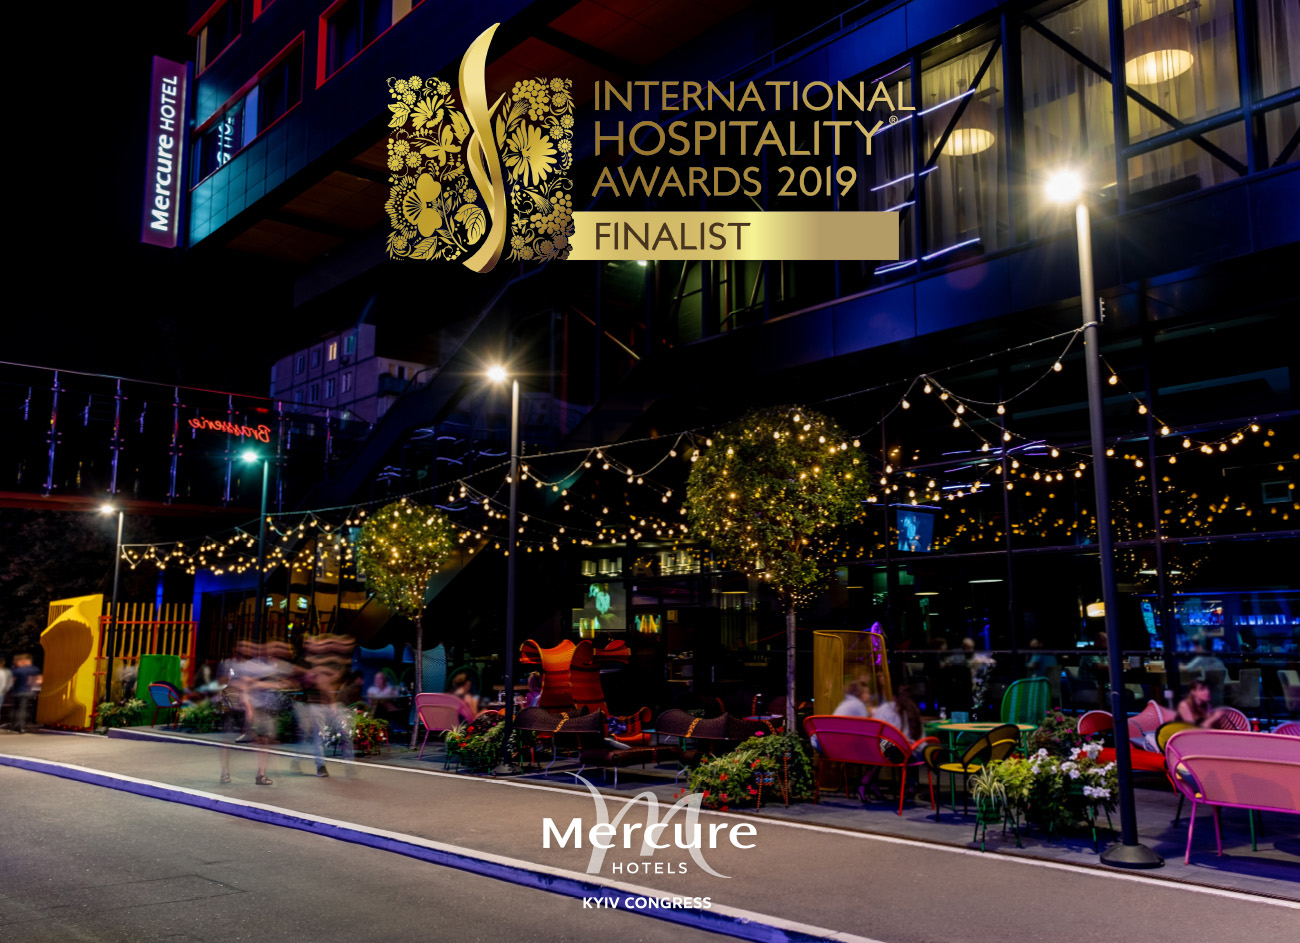 Mercure Kyiv Congress Hotel is the finalist of IHA'2019